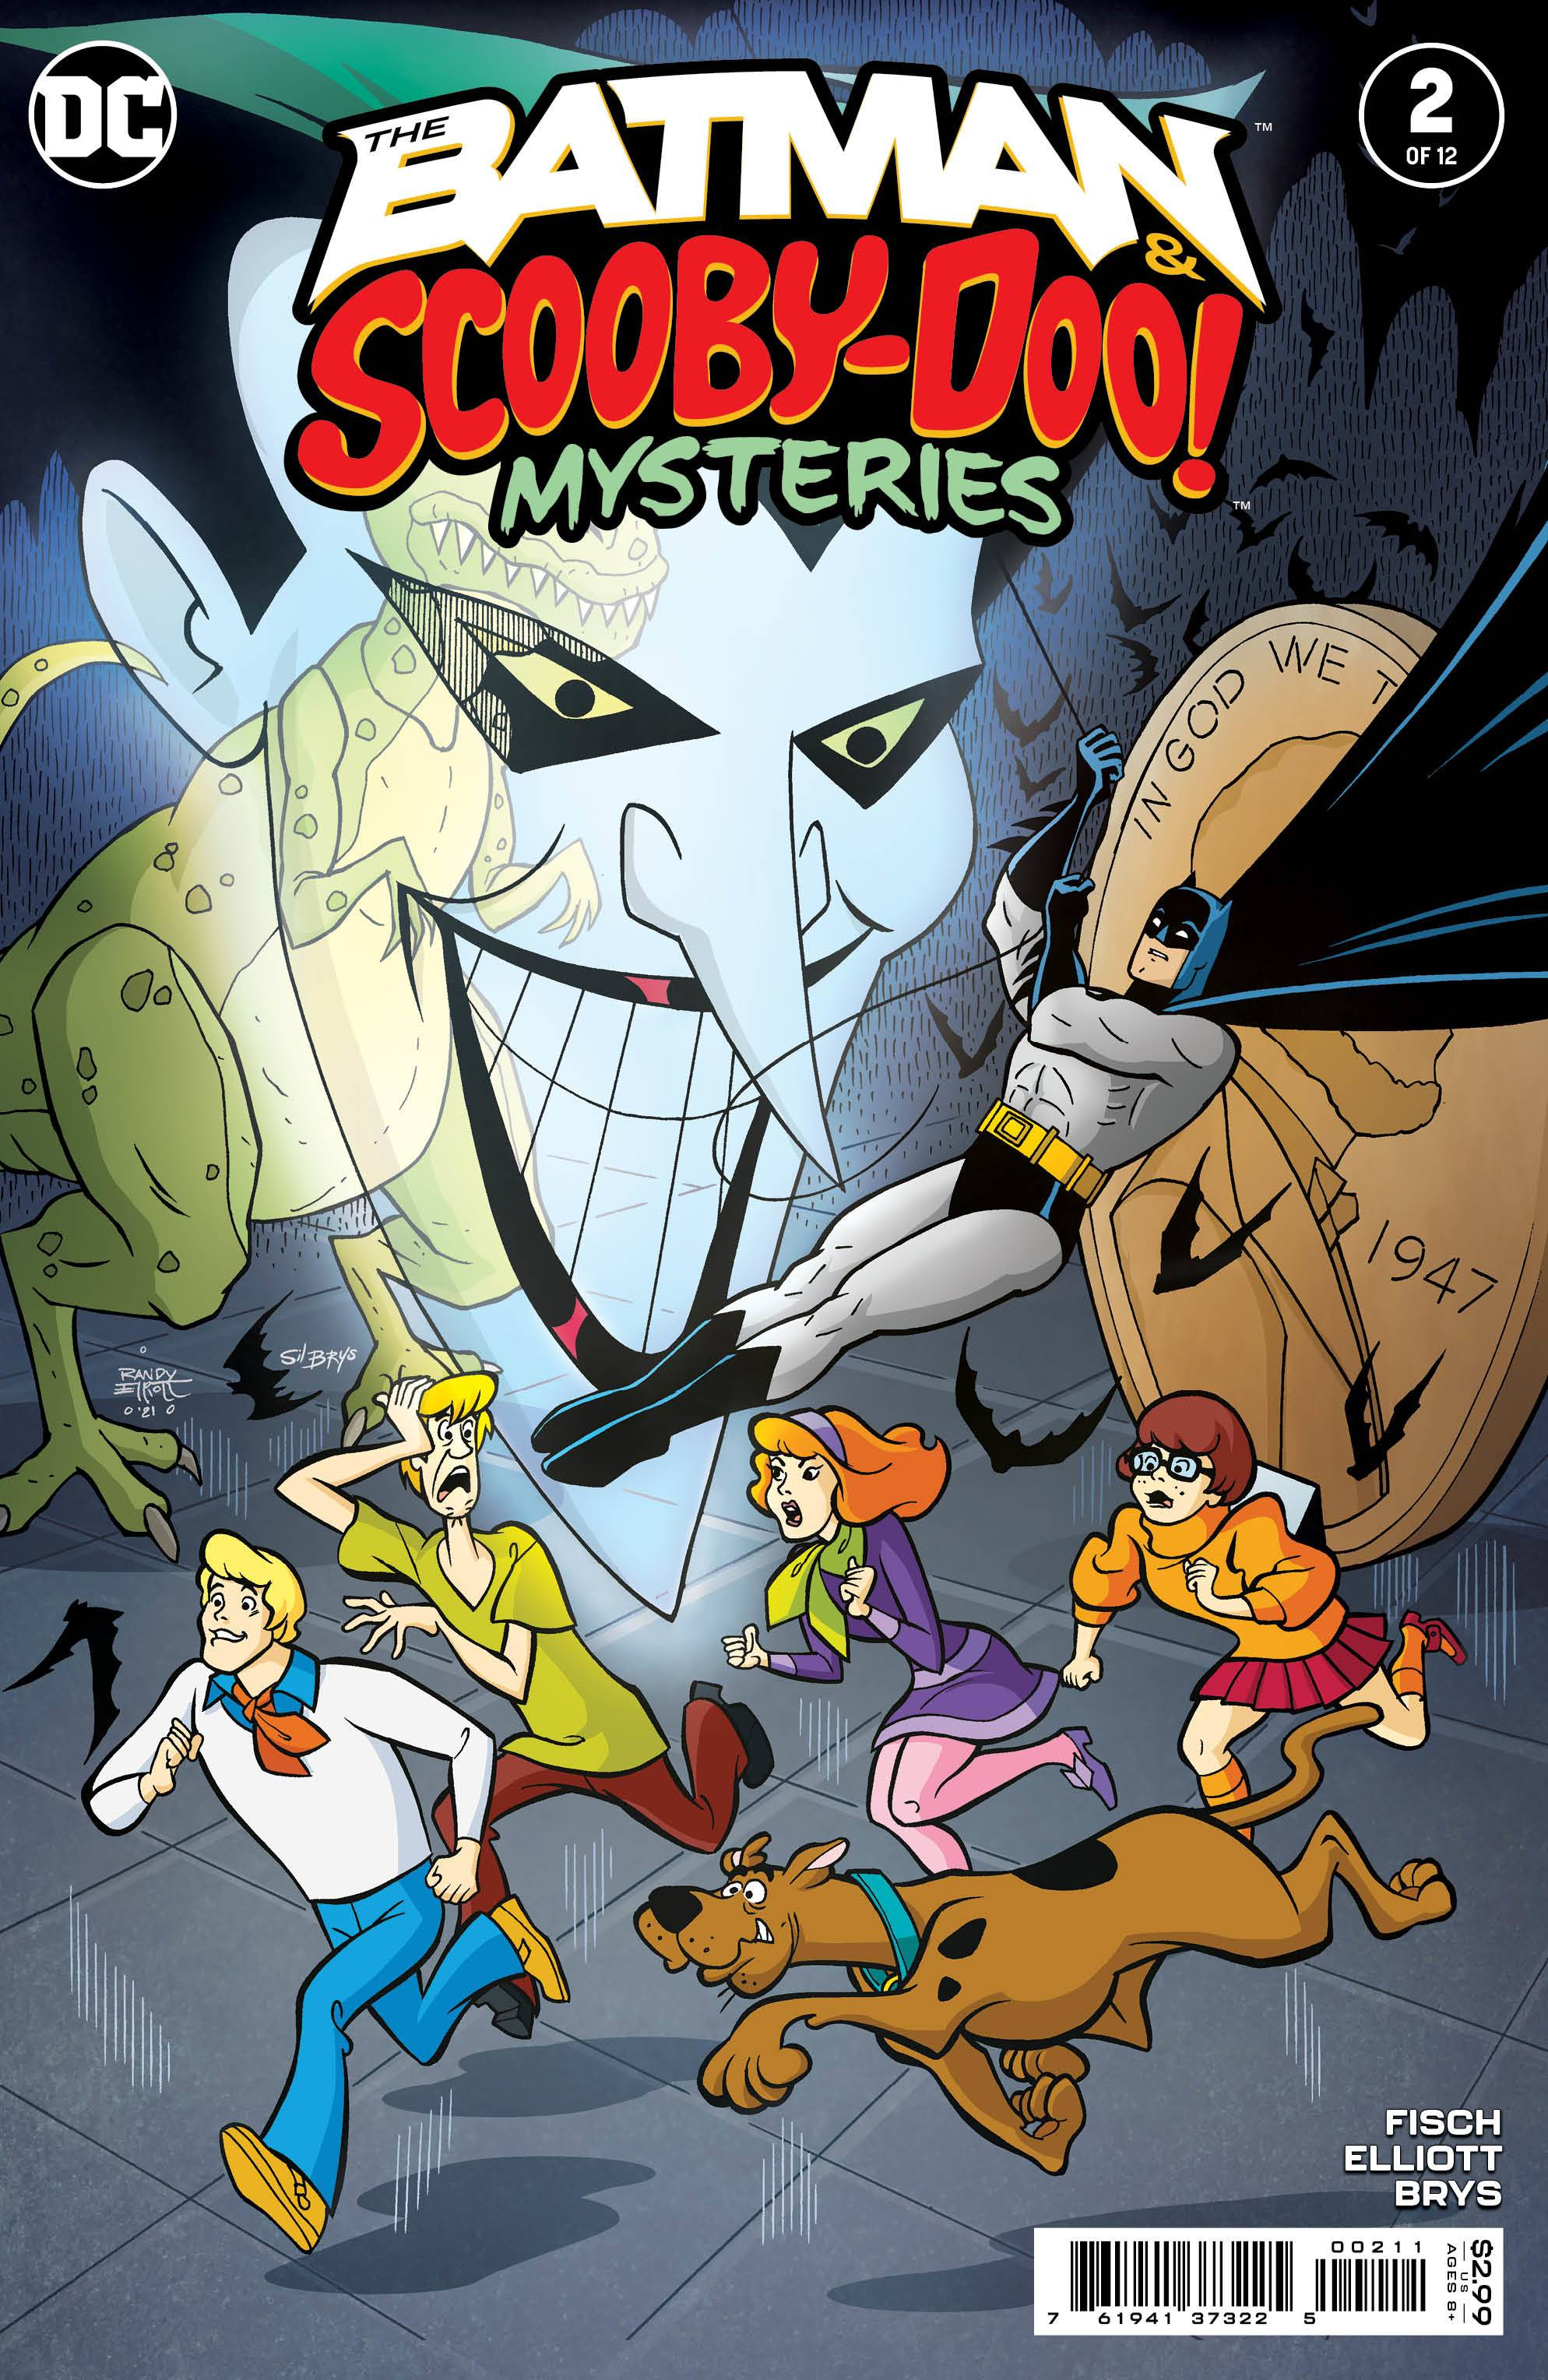 BATMAN & SCOOBY DOO MYSTERIES #2